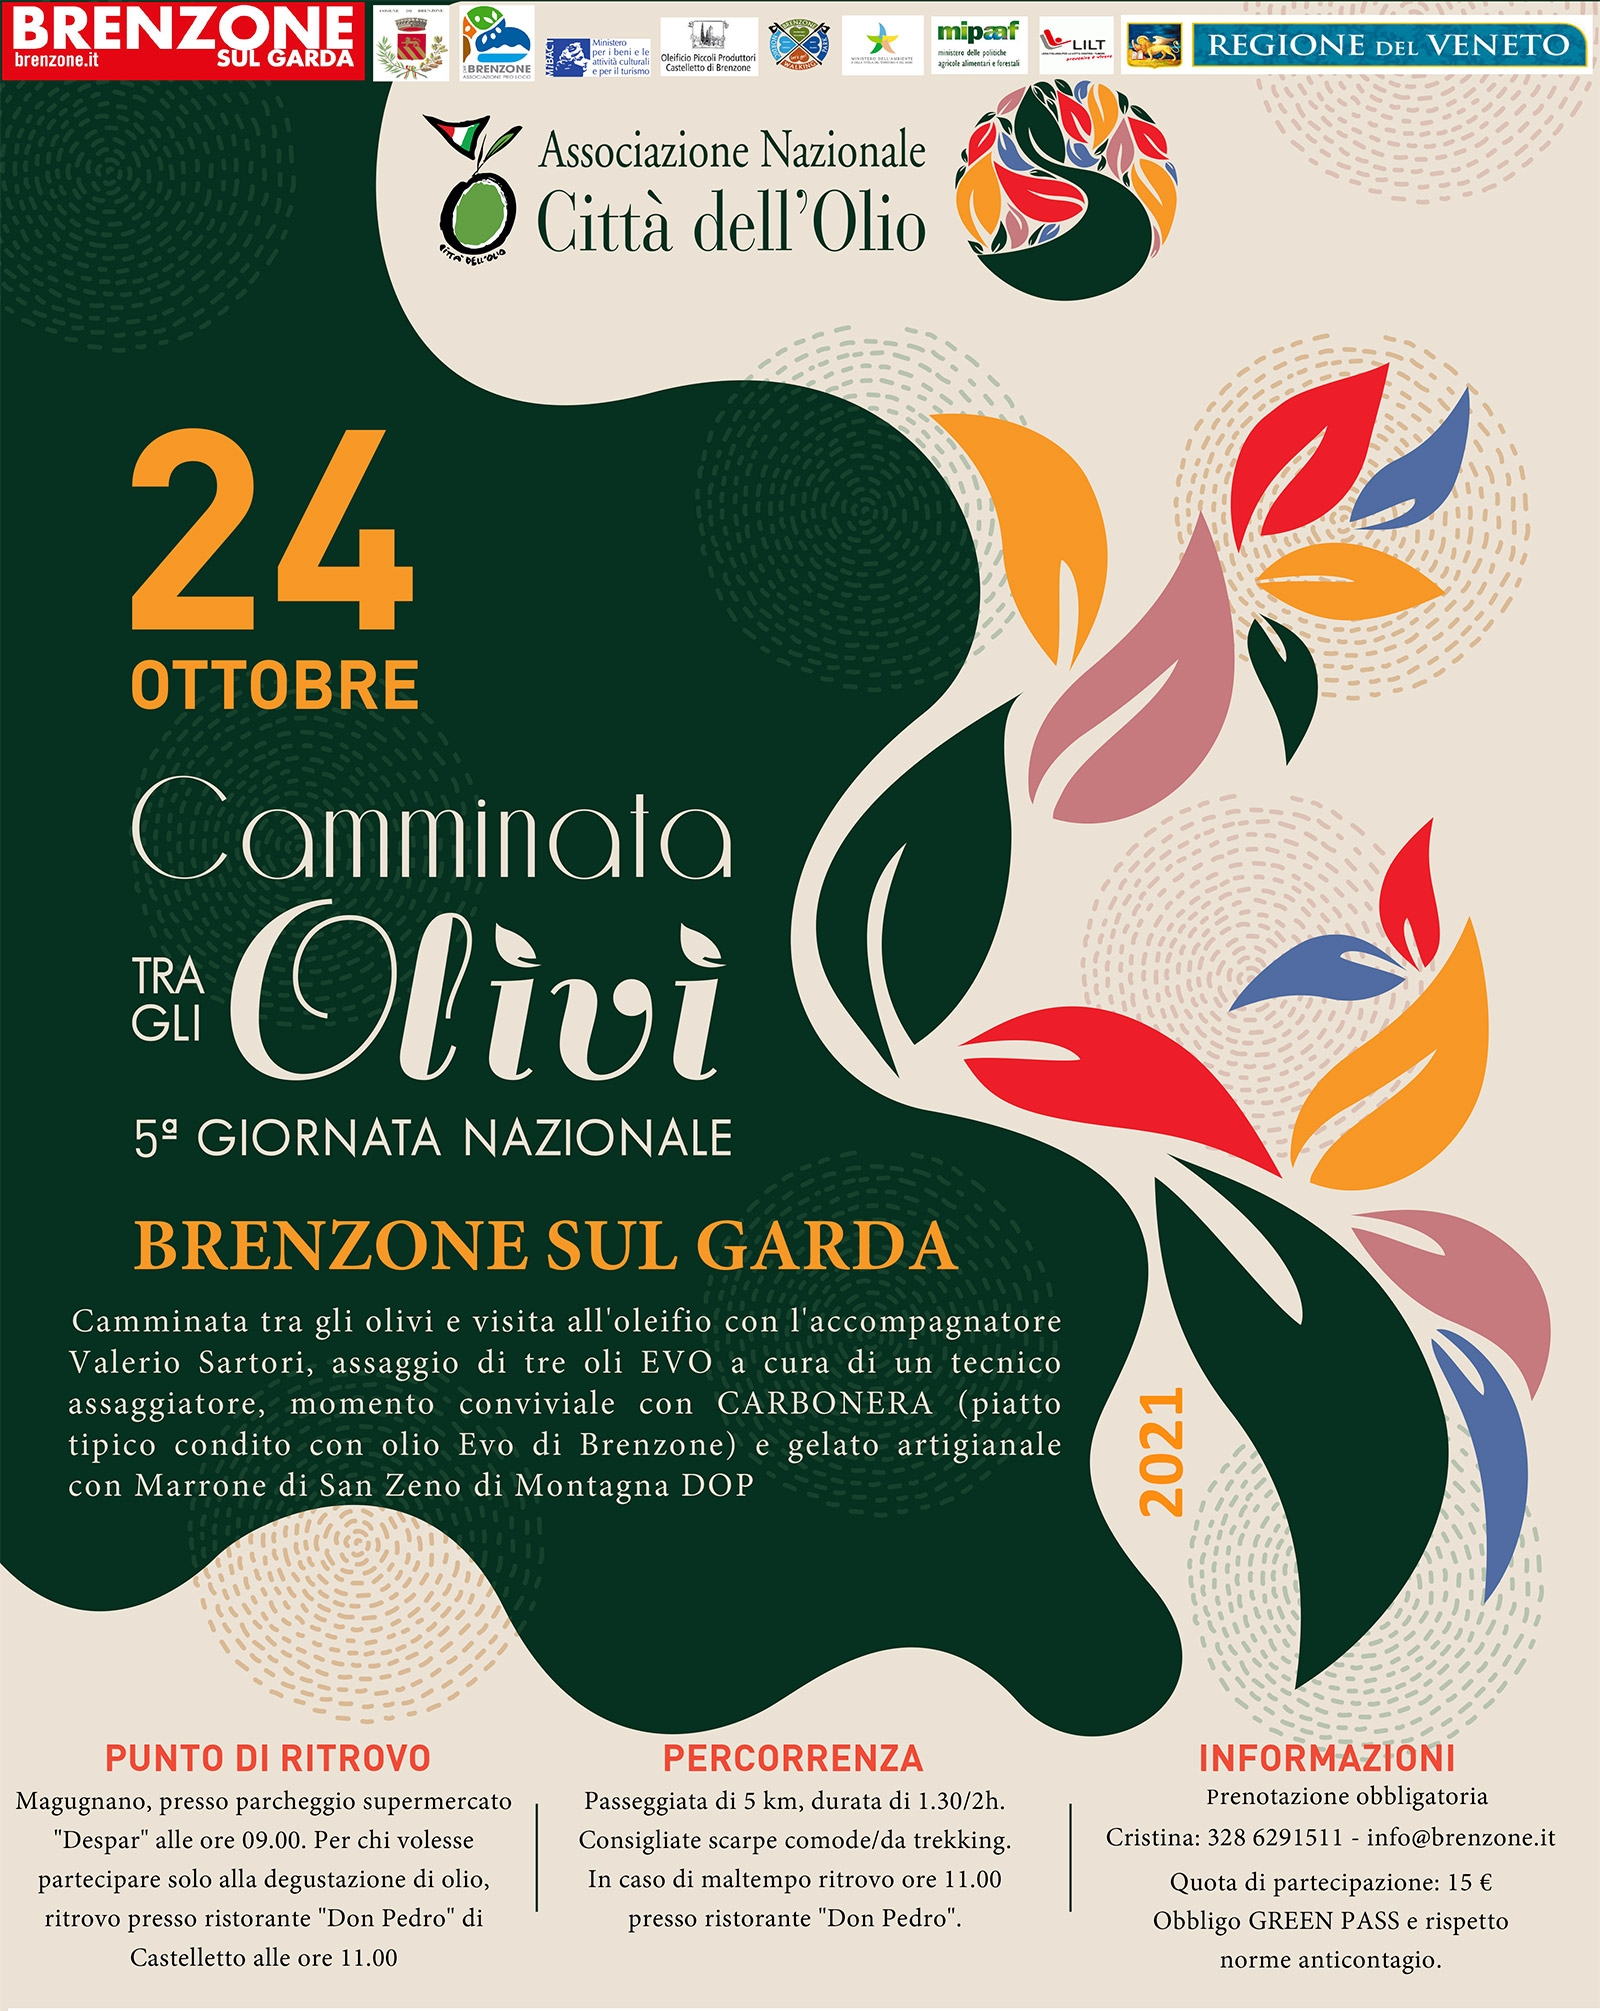 25.10.20: ANNULATA la Giornata nazionale dell'olio - CANCELED the National Oil Day 2020